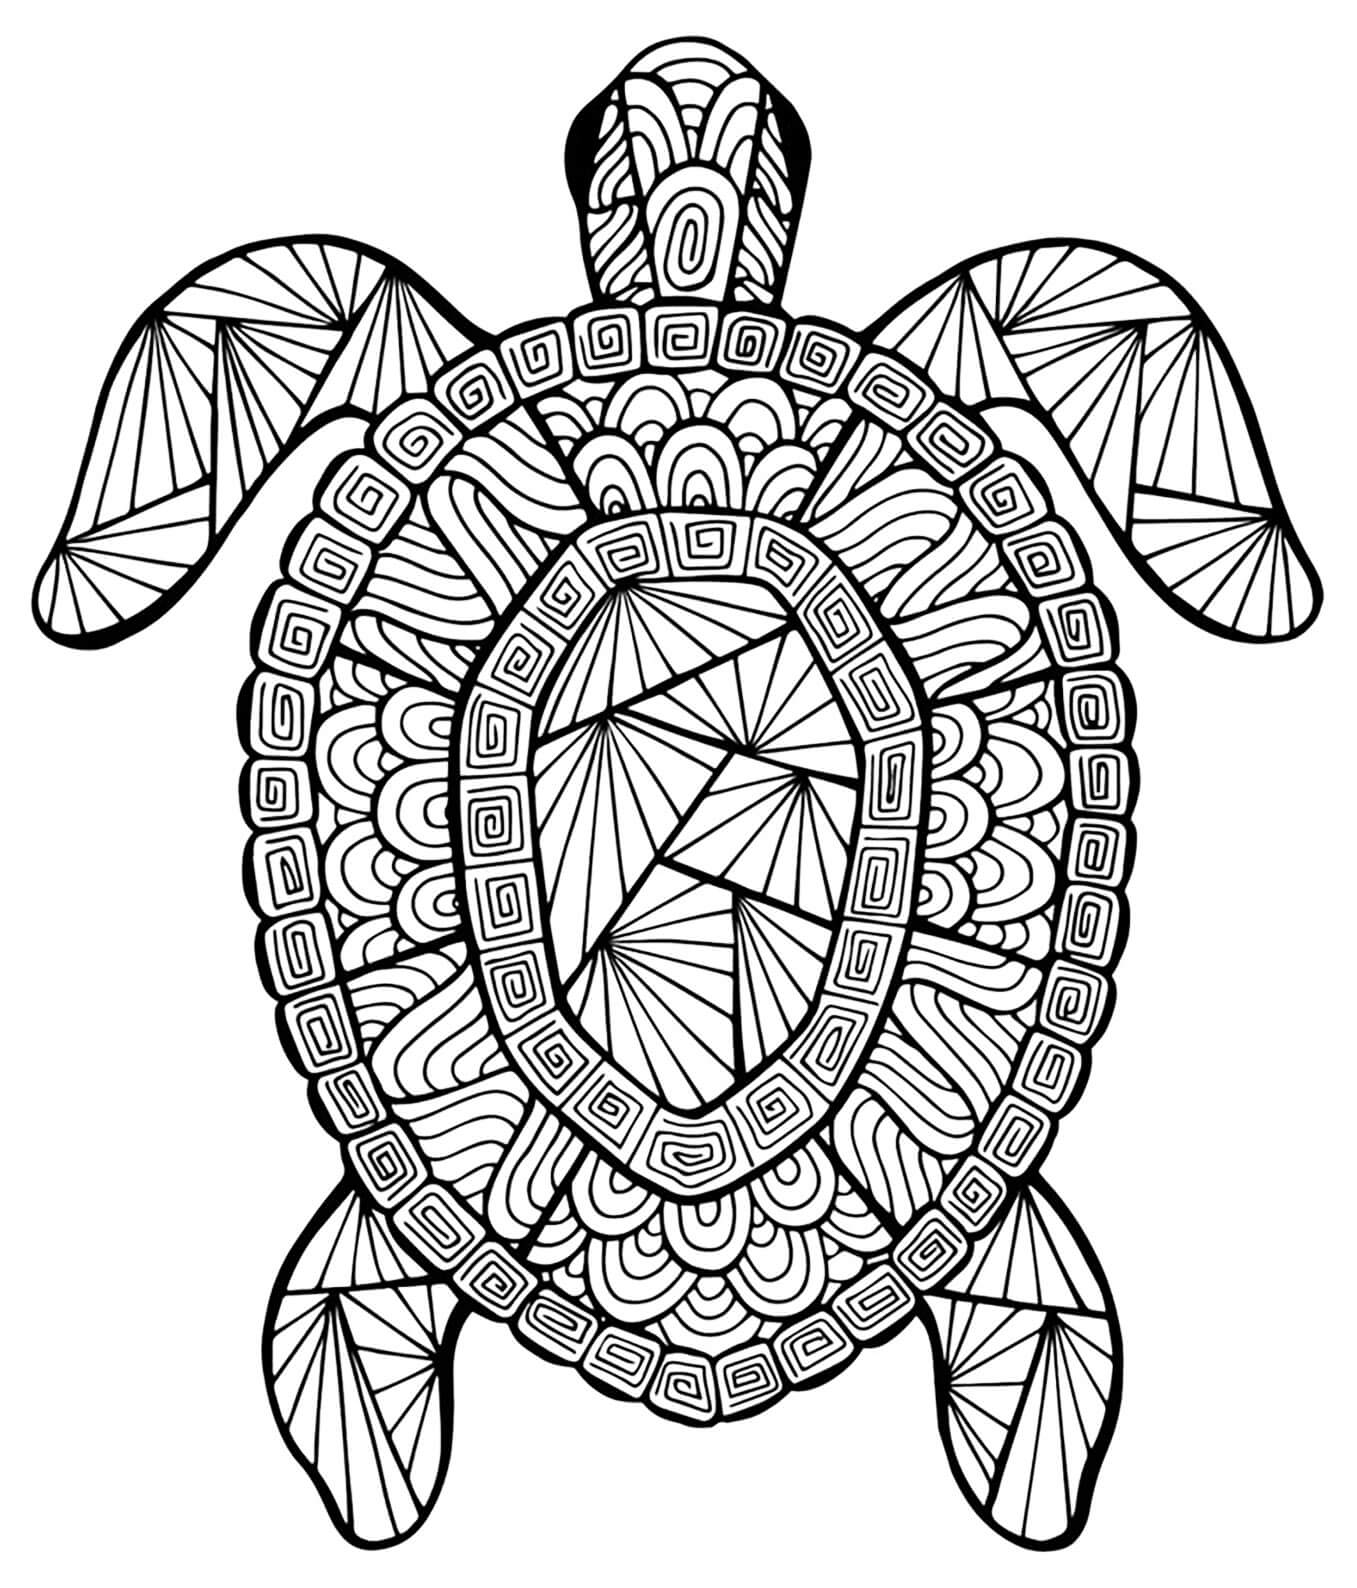 coloring pages for kids hard hard animal coloring pages coloring pages for kids for pages hard kids coloring